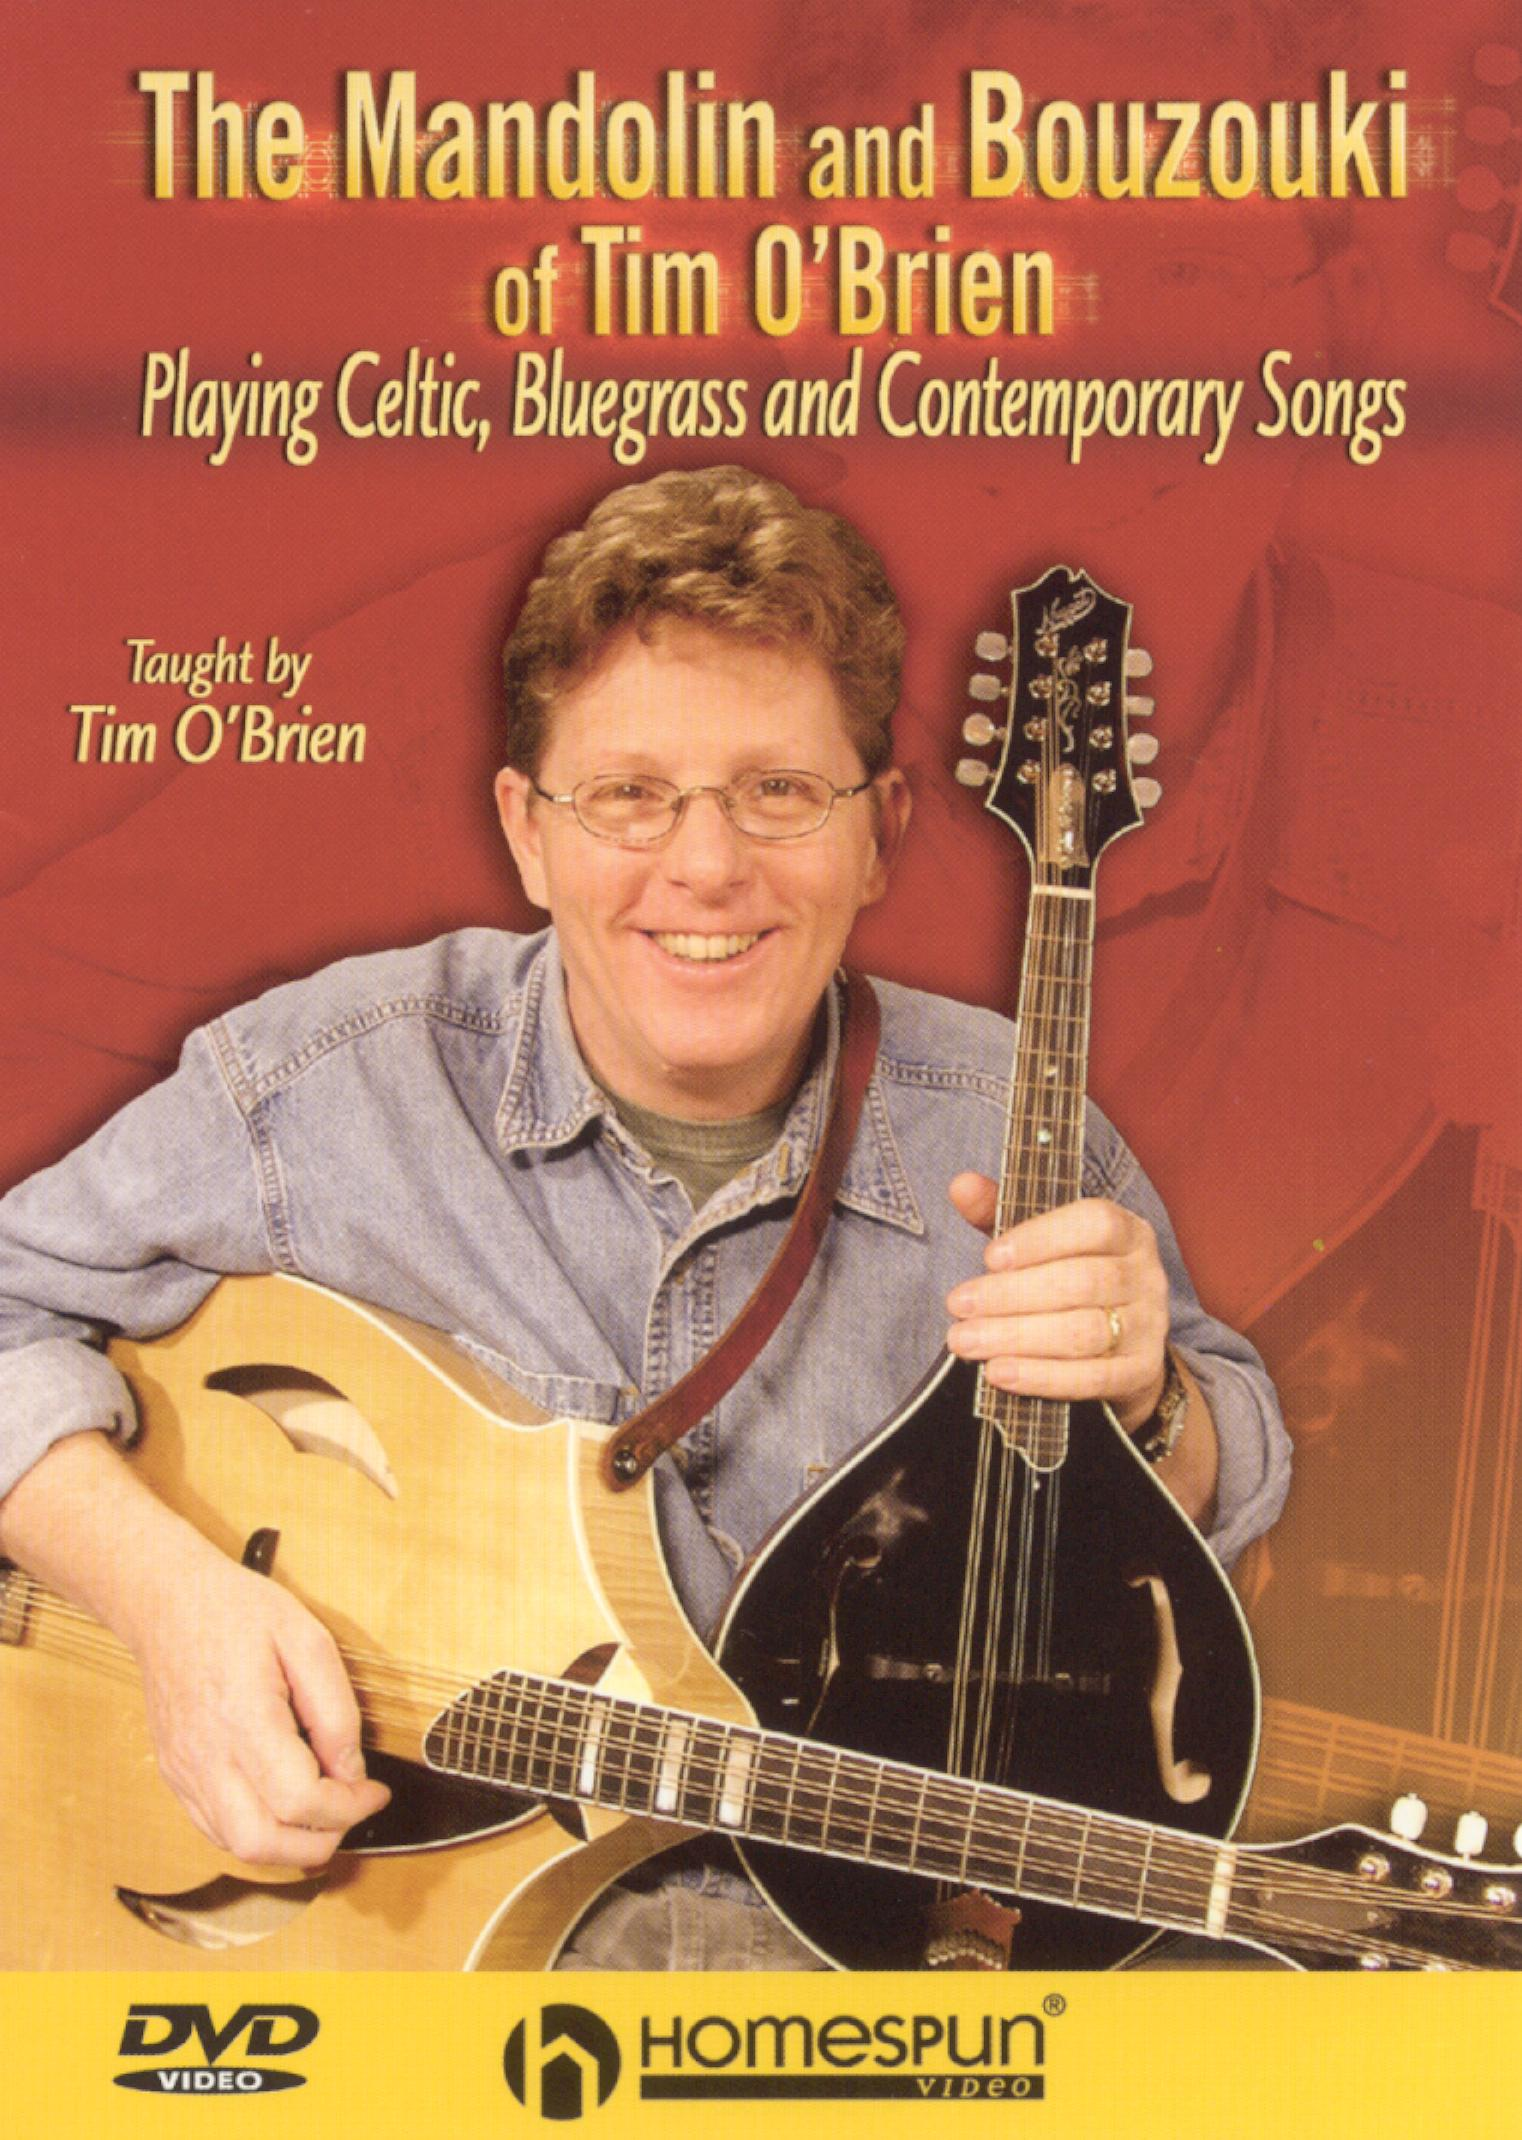 The Mandolin and Bouzouki of Tim O'Brien: Playing Celtic, Bluegrass and Contemporary Songs